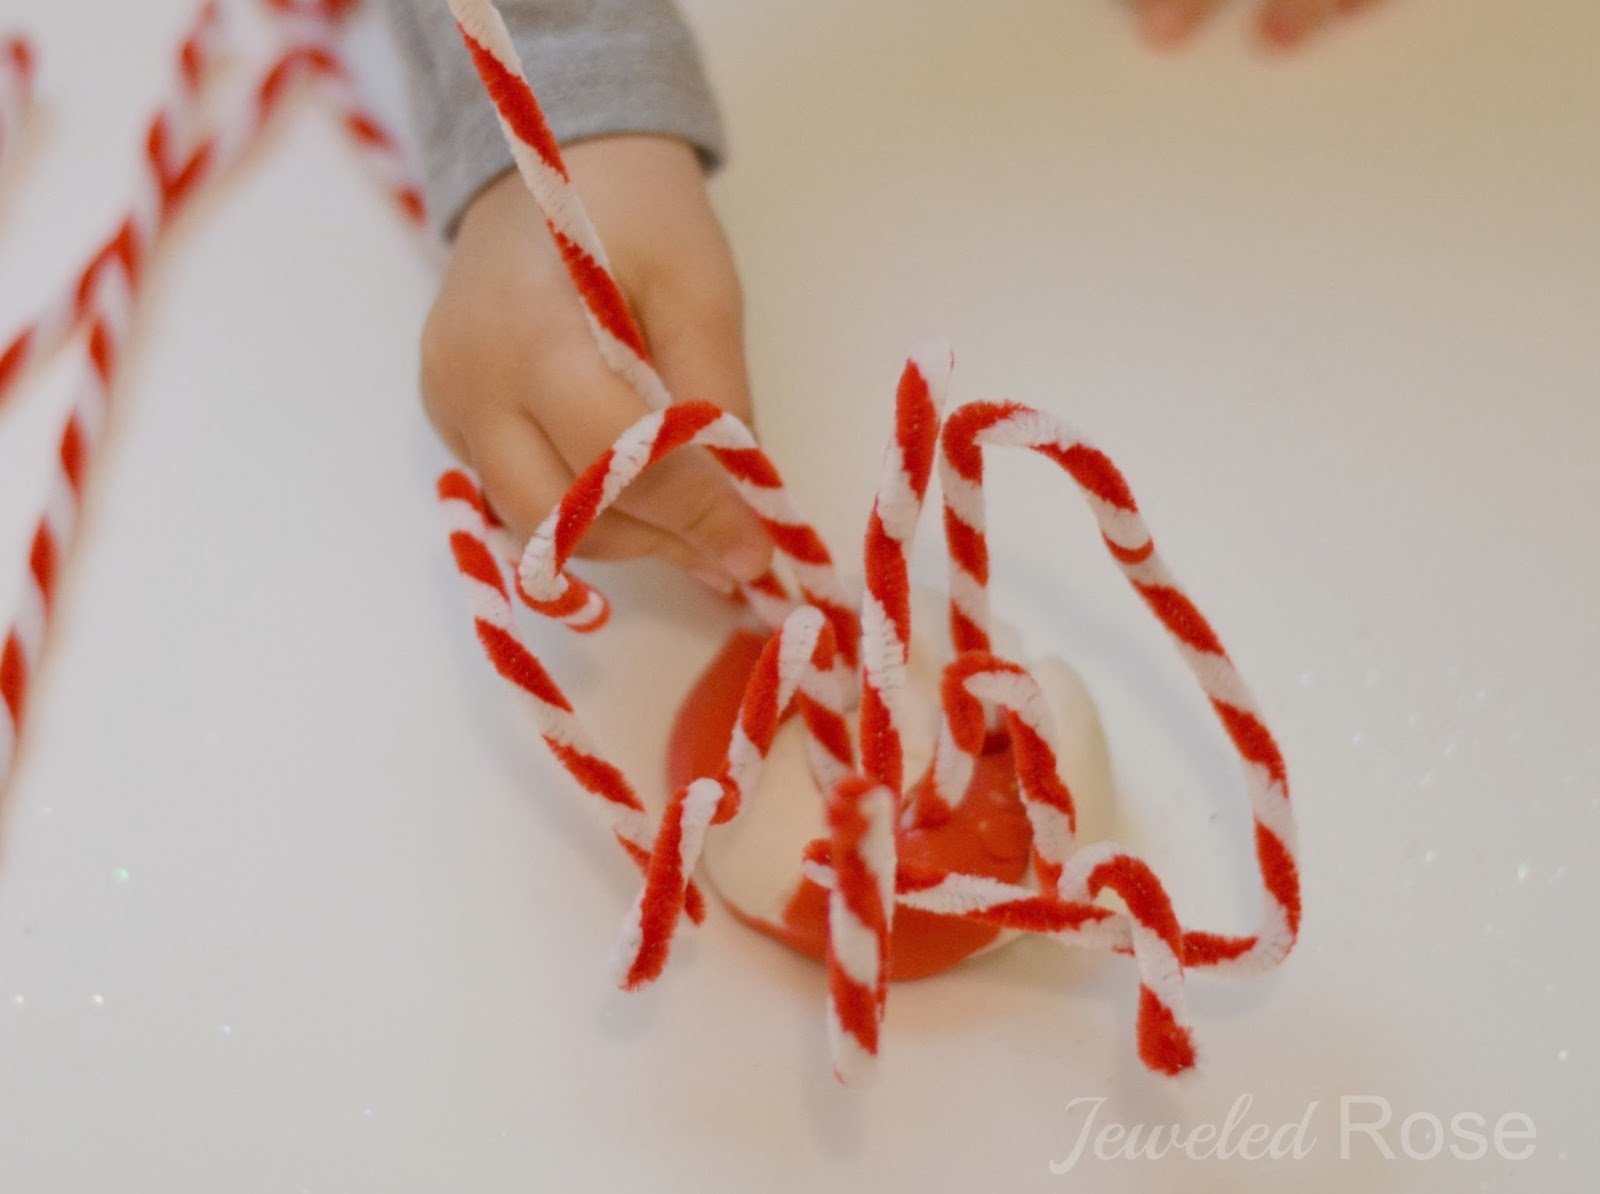 candy cane clay recipe growing a jeweled rose